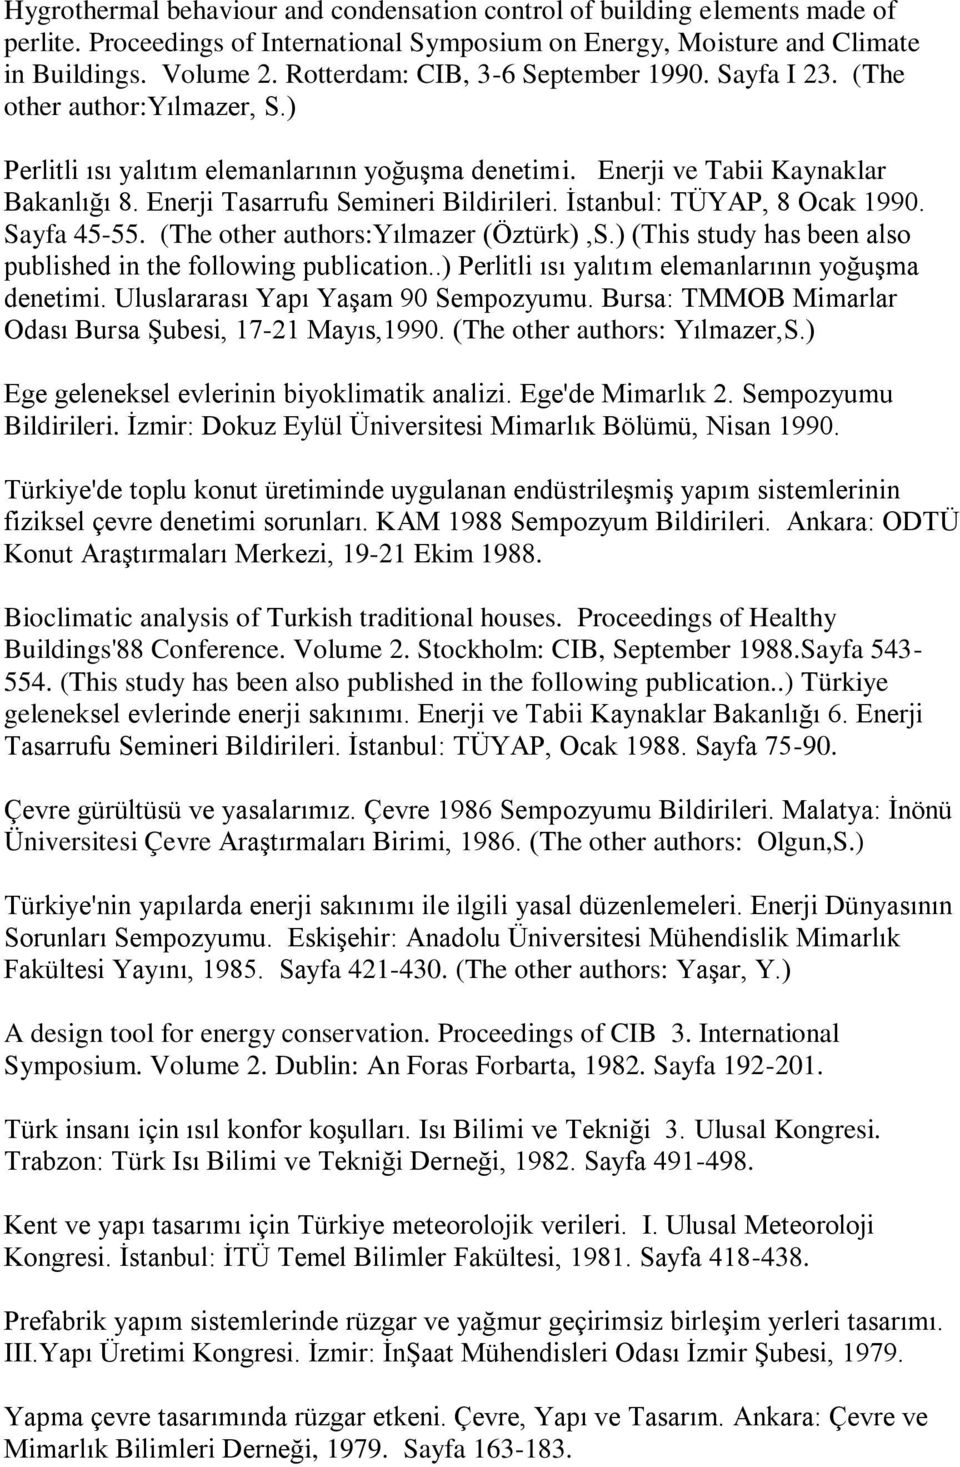 Enerji Tasarrufu Semineri Bildirileri. İstanbul: TÜYAP, 8 Ocak 1990. Sayfa 45-55. (The other authors:yılmazer (Öztürk),S.) (This study has been also published in the following publication.